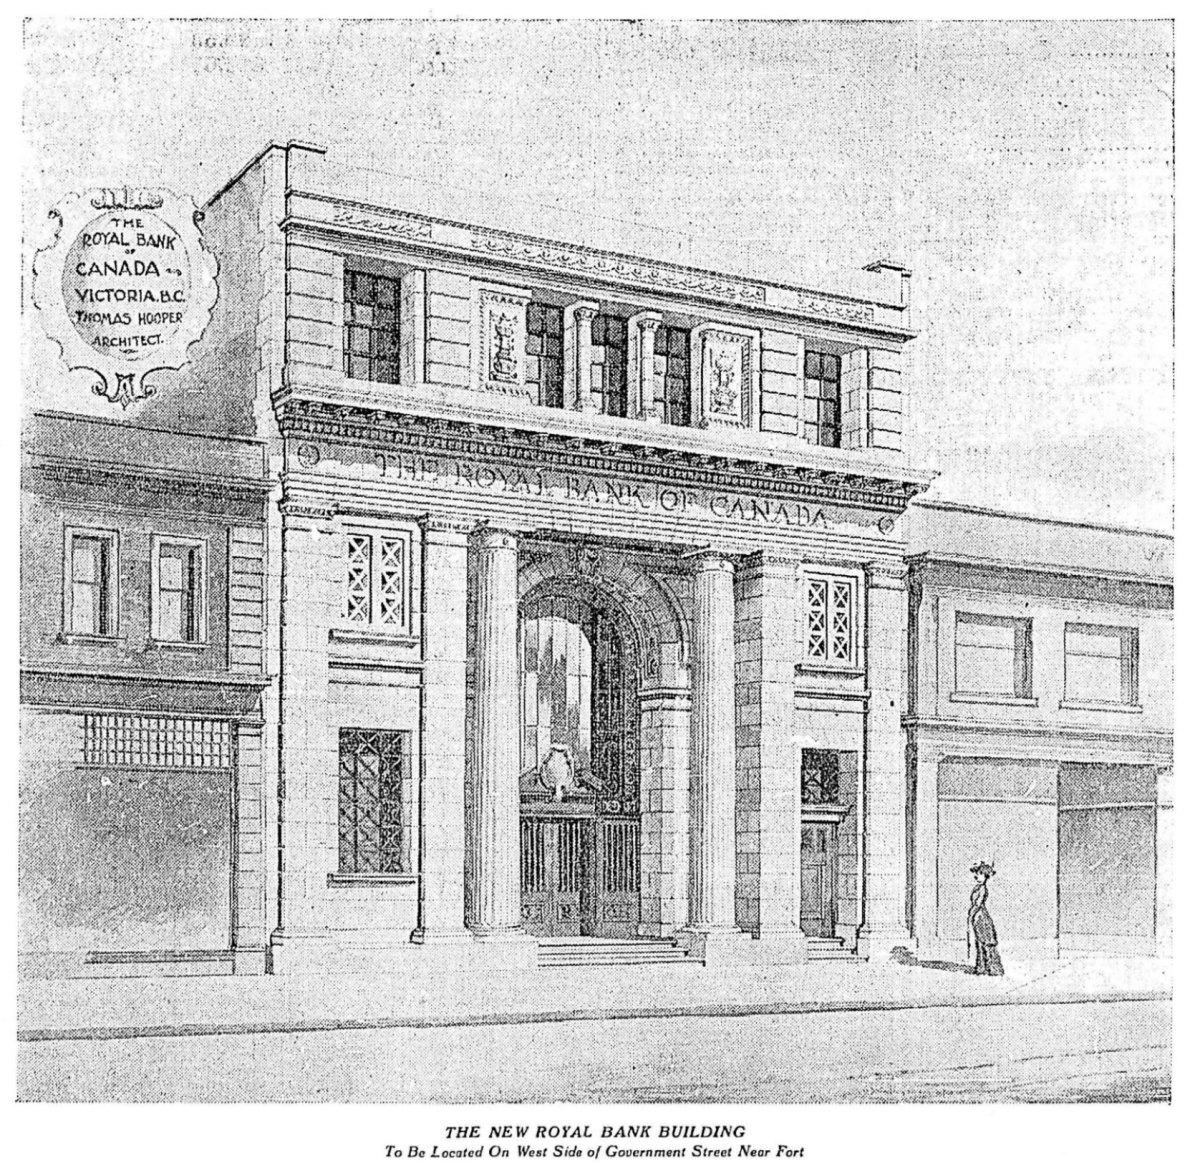 1909 promotional drawing of 1108 Government Street released by the Royal Bank of Canada and architect Thomas Hooper